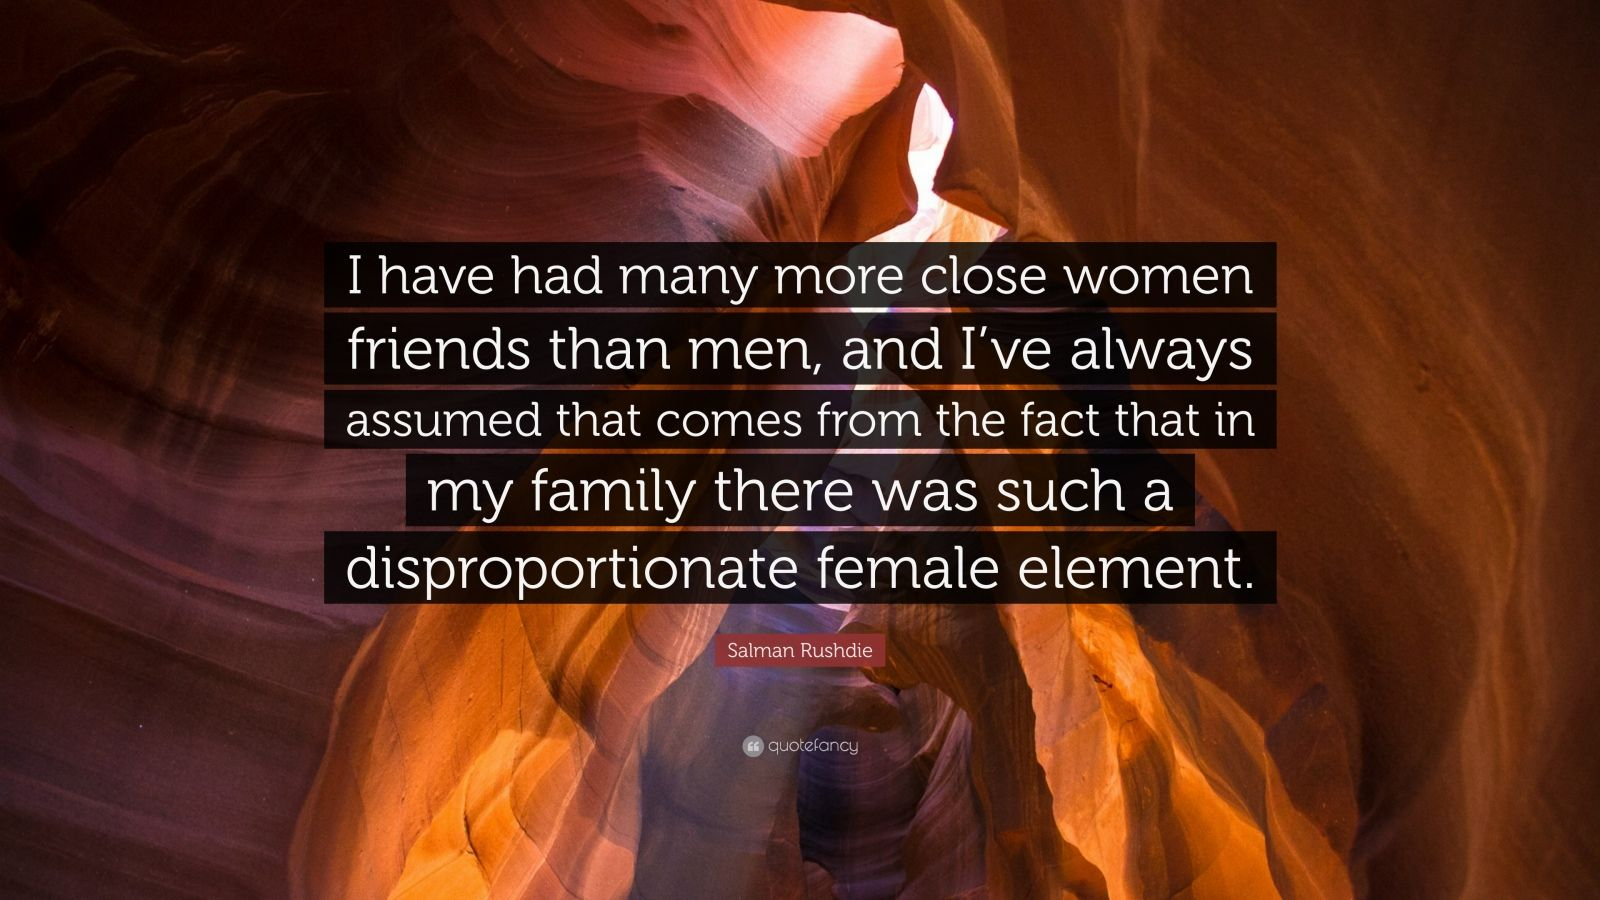 """Salman Rushdie Quote: """"I have had many more close women friends than men, and I've always assumed that comes from the fact that in my family there was such a disproportionate female element."""""""